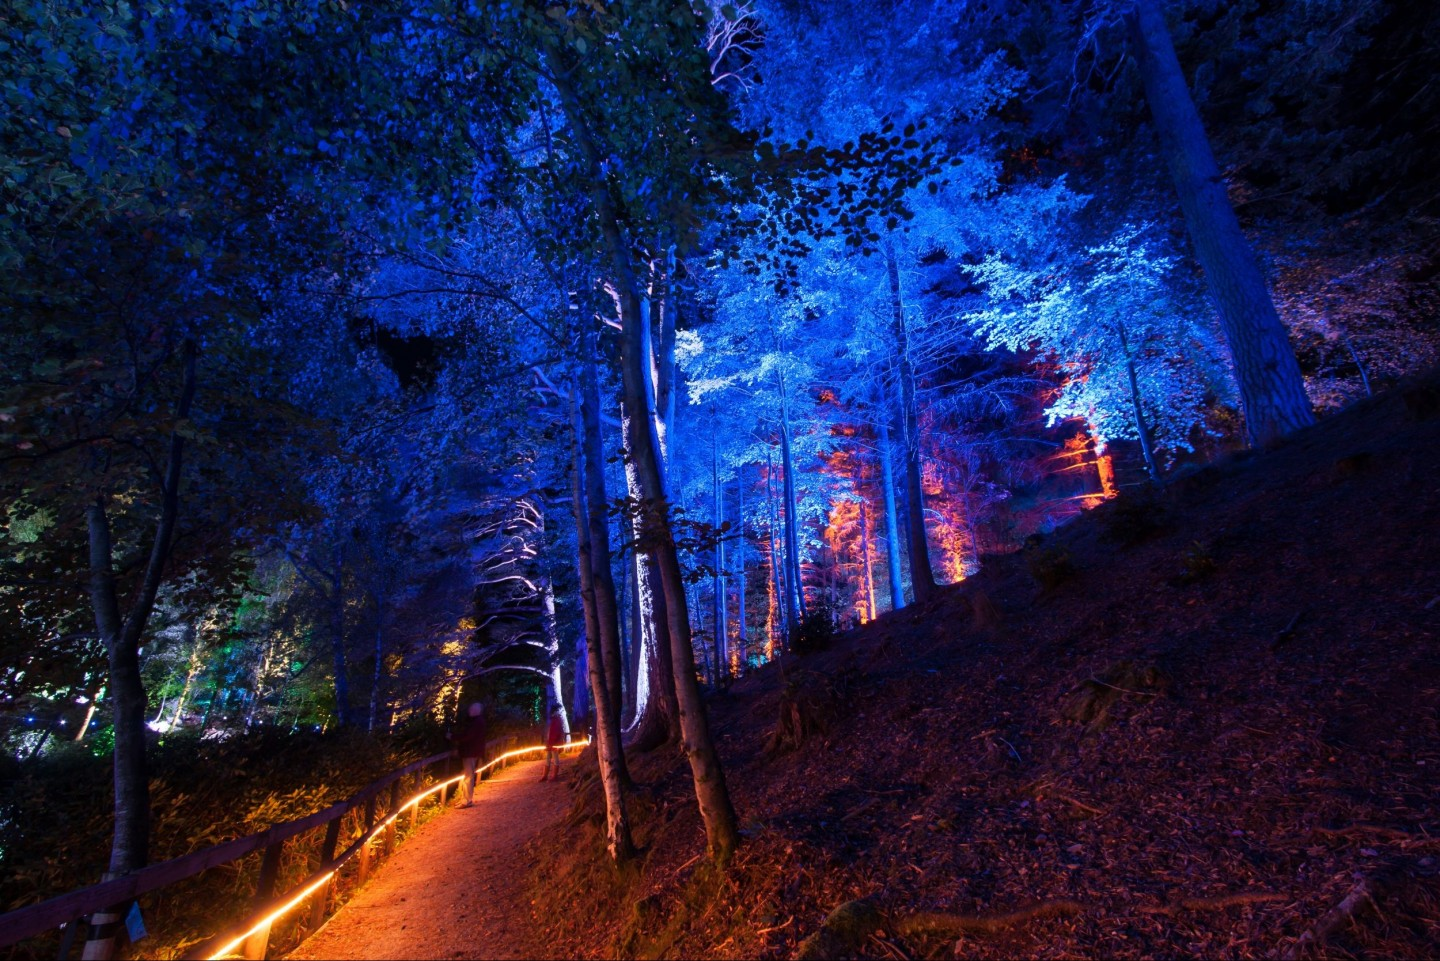 Pitlochry tour, Enchanted Forest © Graham Smith, group tour to Pitlochry